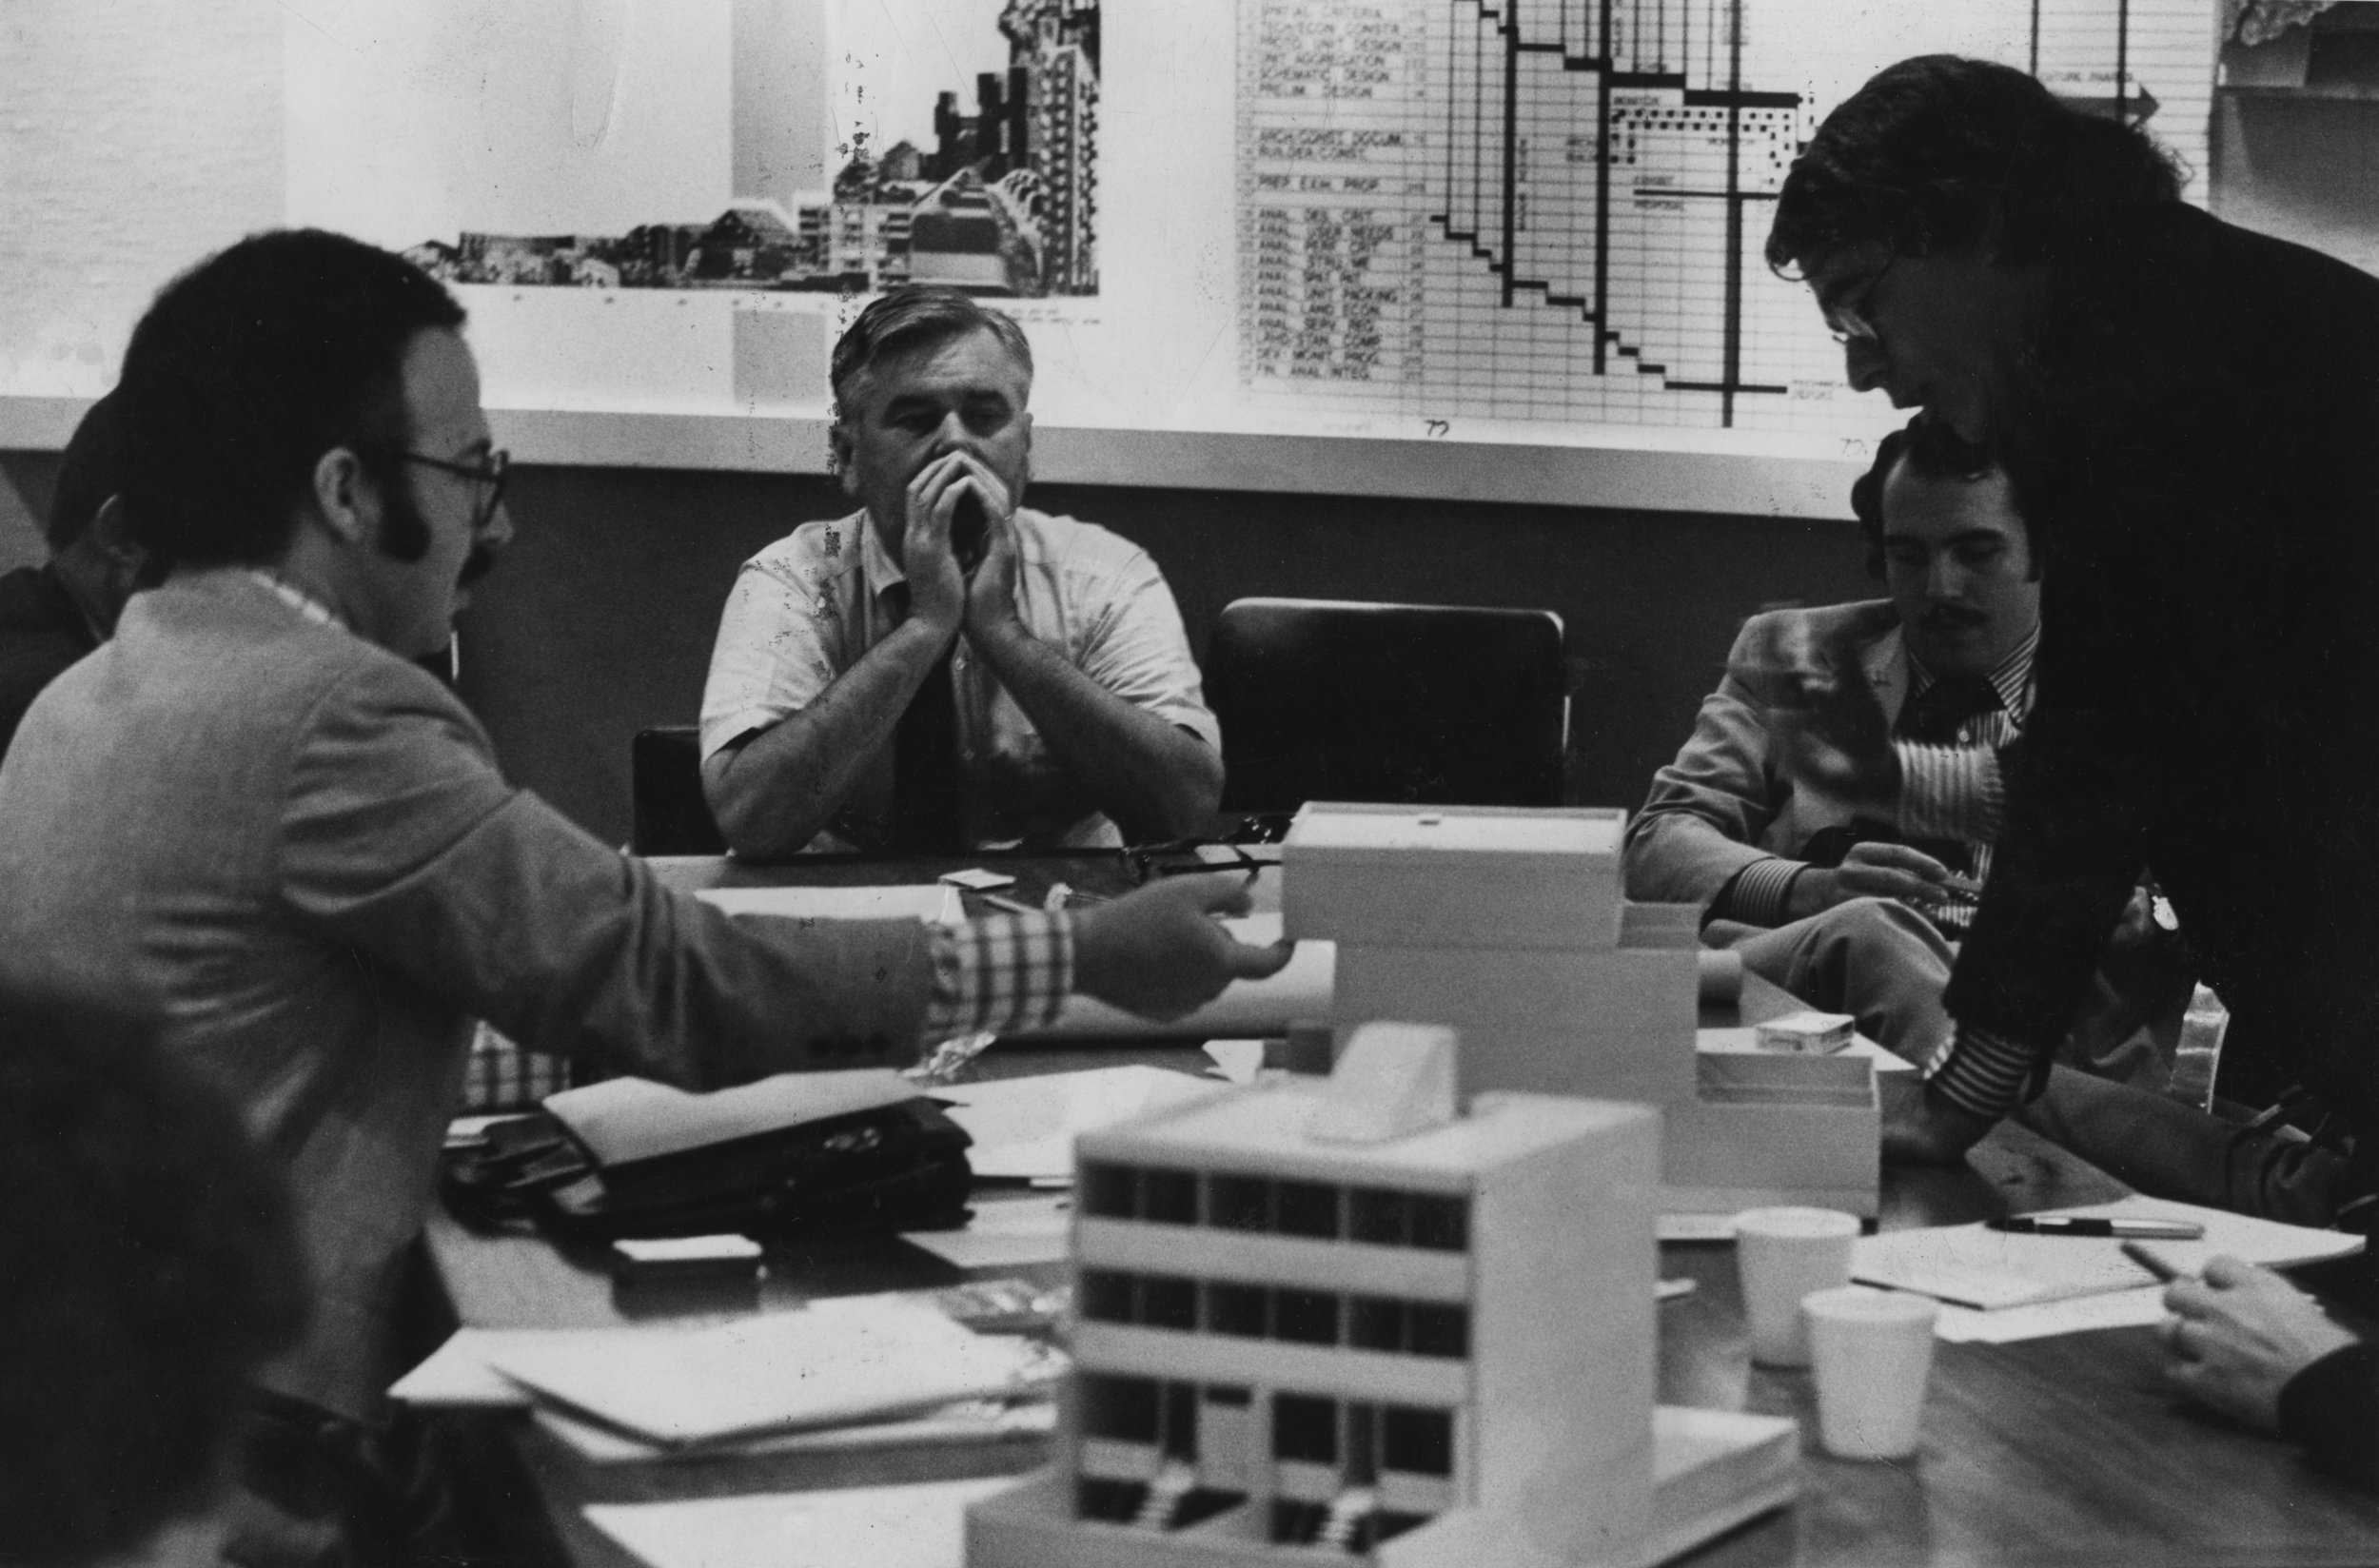 Figure 2. Marcus Garvey Park Village planning meeting, 1972. Ed Logue (center) is discussing the ideal housing prototype with chief UDC architect Ted Liebman (left) and architects Tony Pangaro (next to Logue) and Peter Eisenman (farther right). Courtesy of Robert Perron Photography.